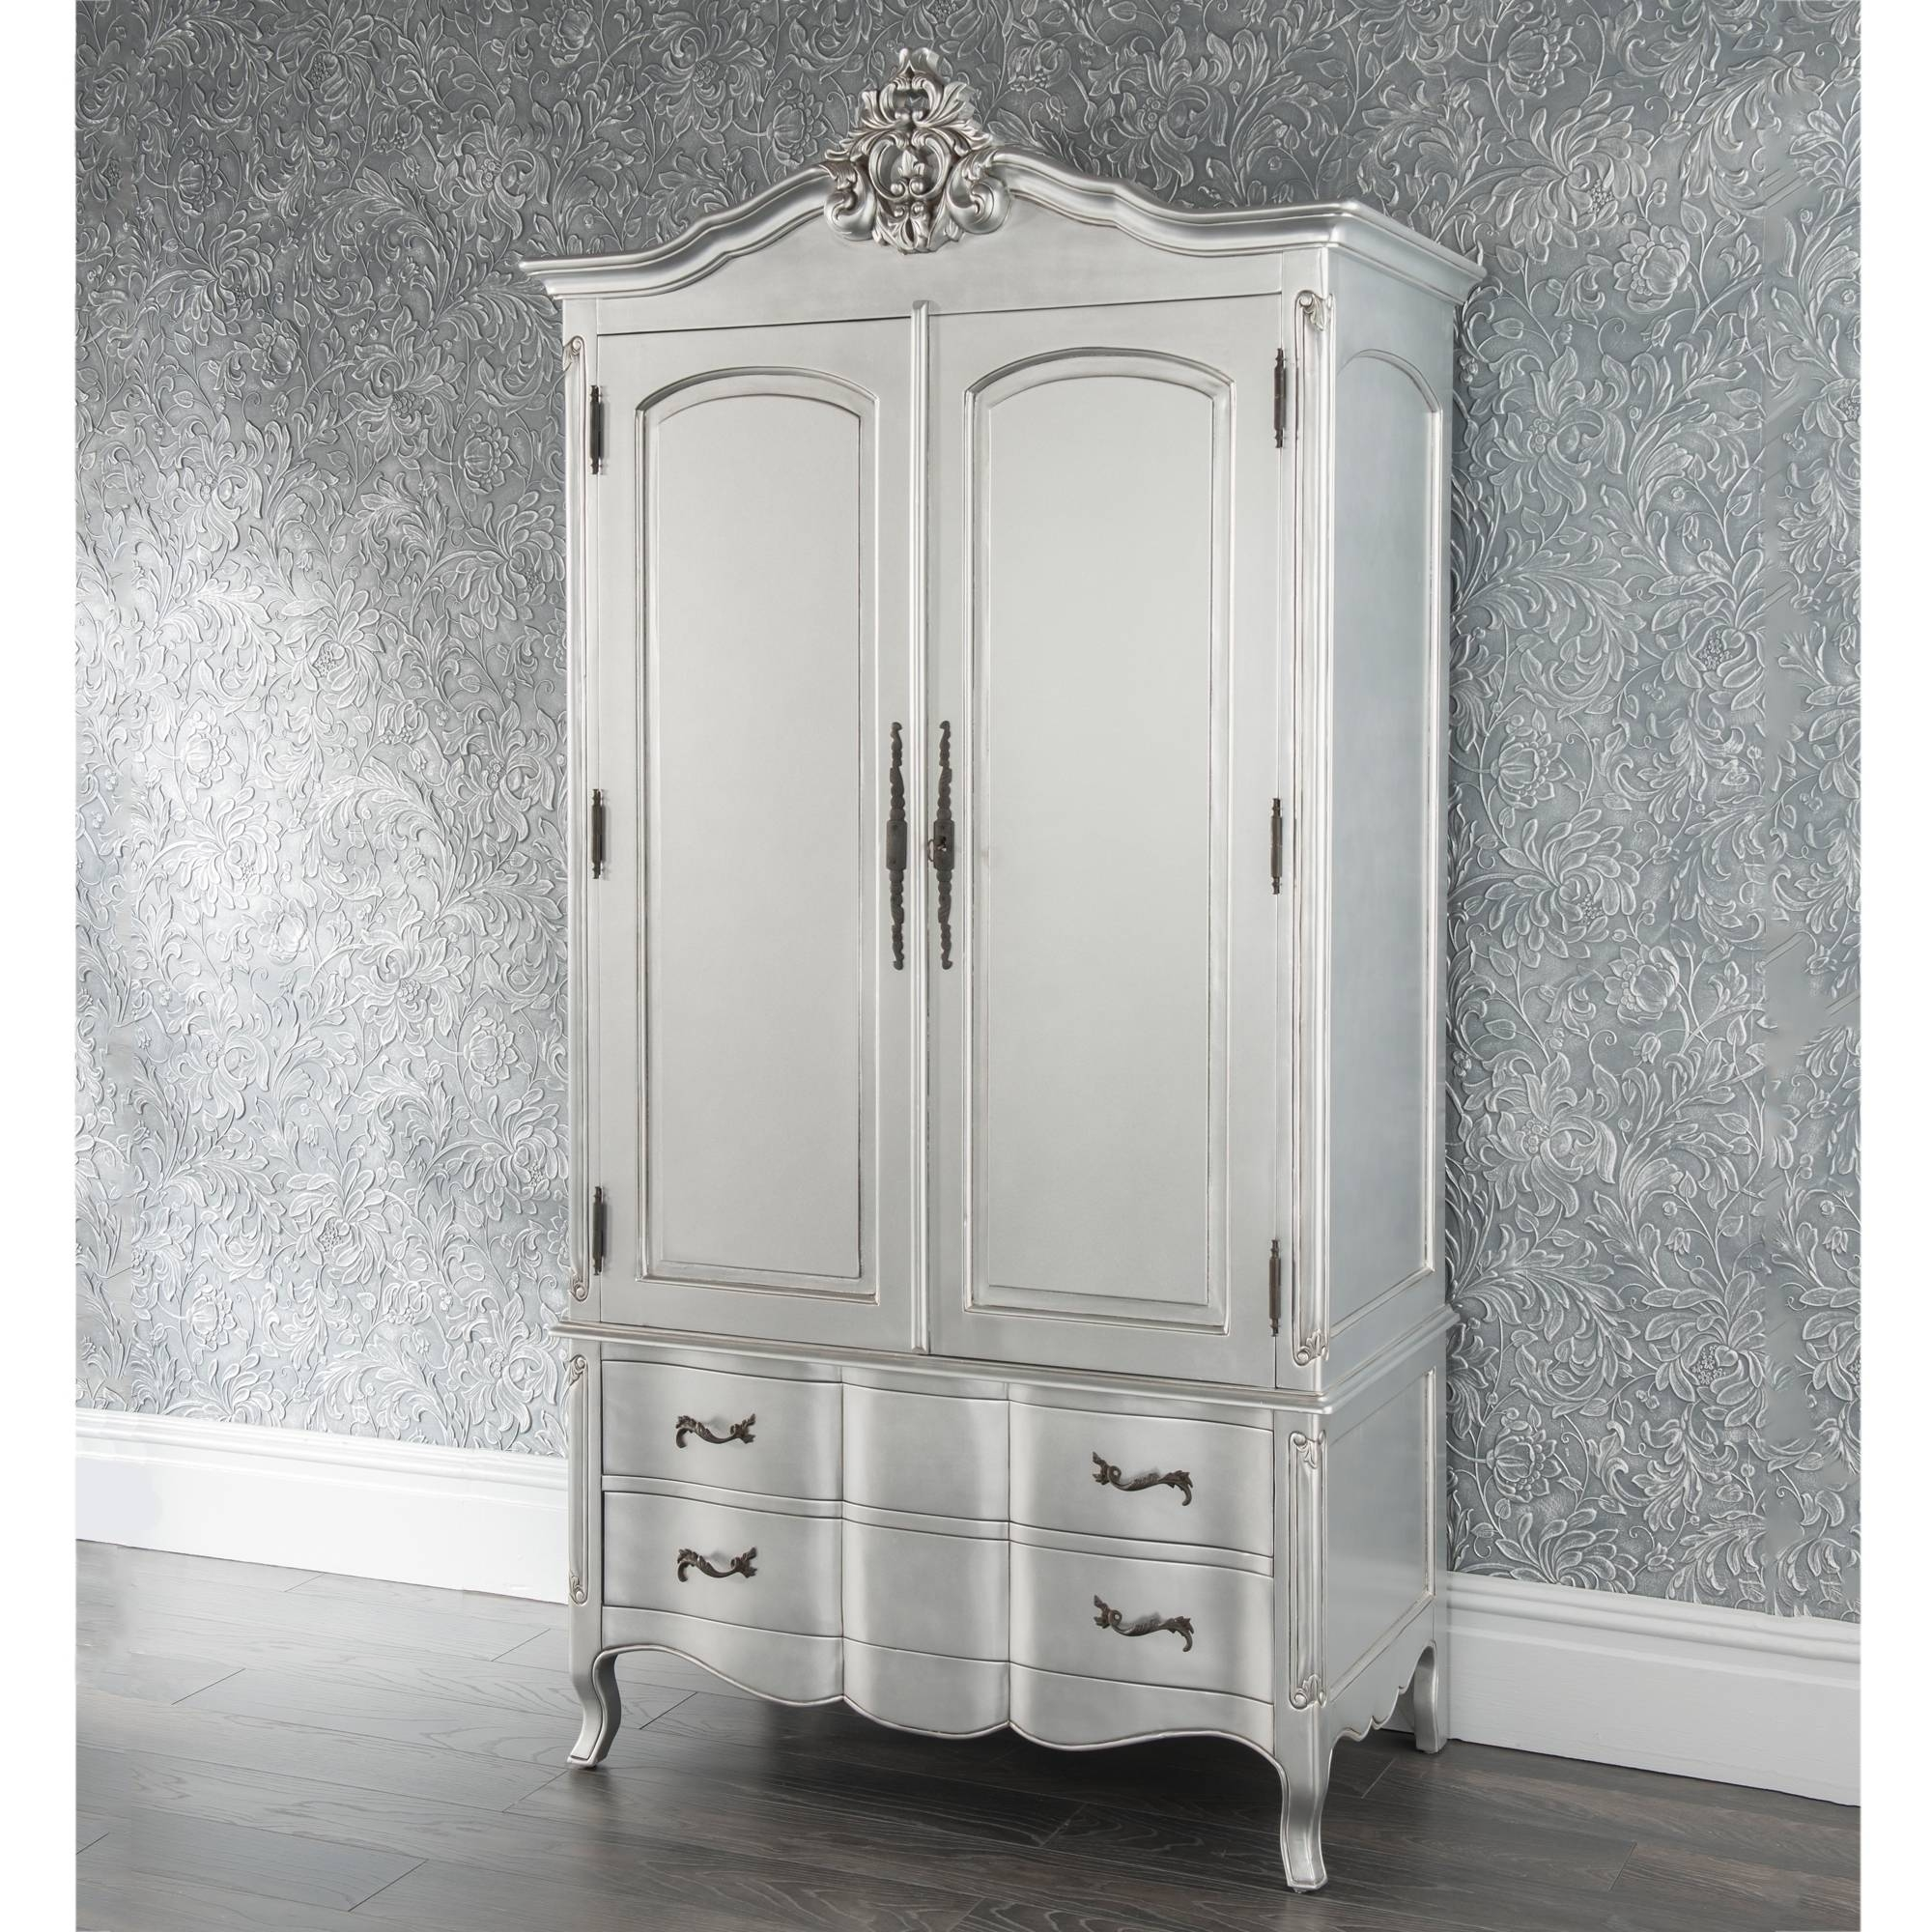 Estelle Antique French Style Wardrobe | French Style Furniture throughout Black French Style Wardrobes (Image 3 of 15)